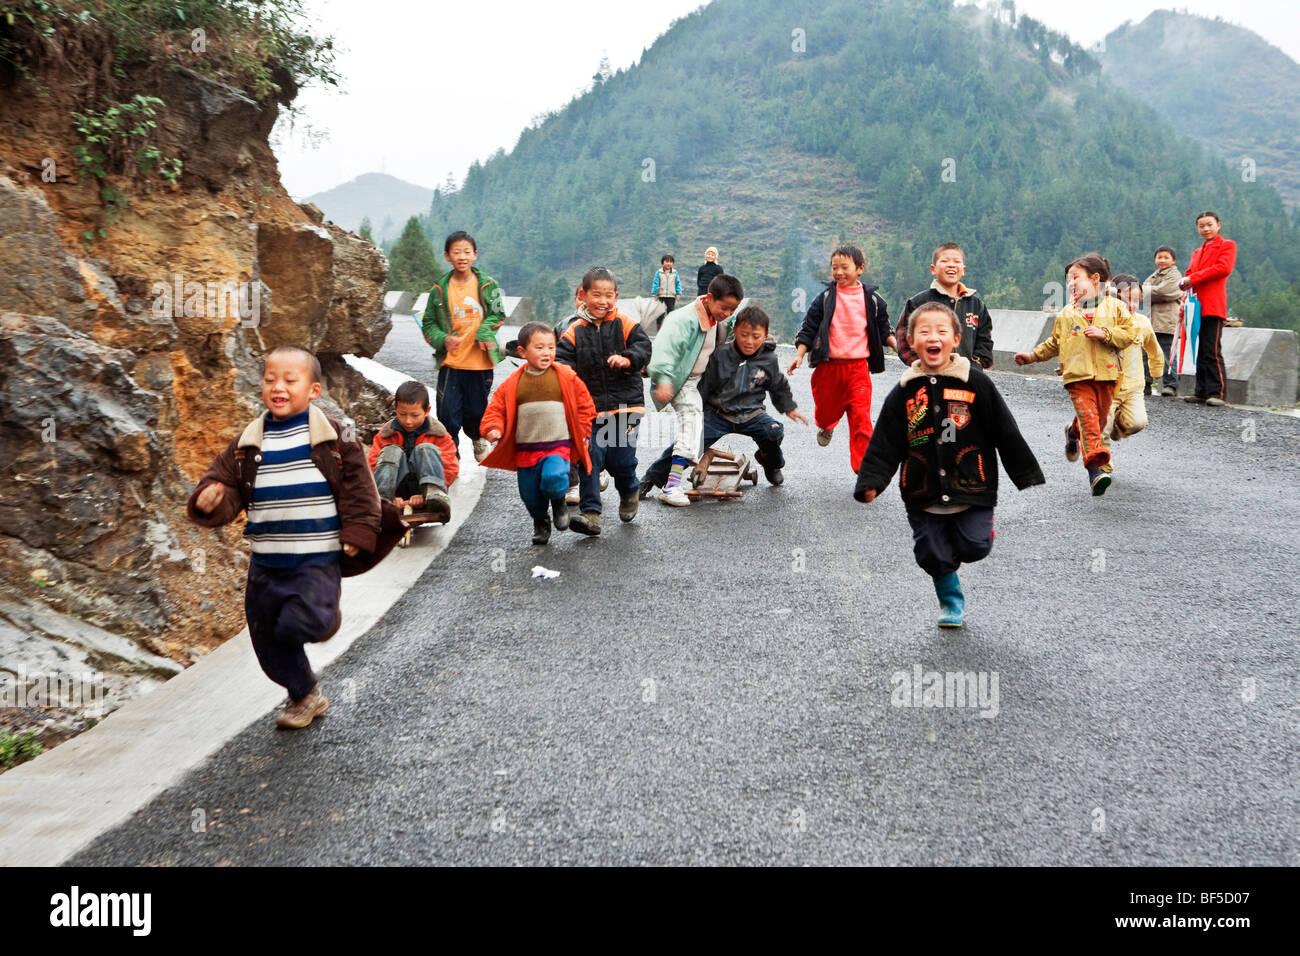 School children running on paved road, Guizhou Province, China - Stock Image